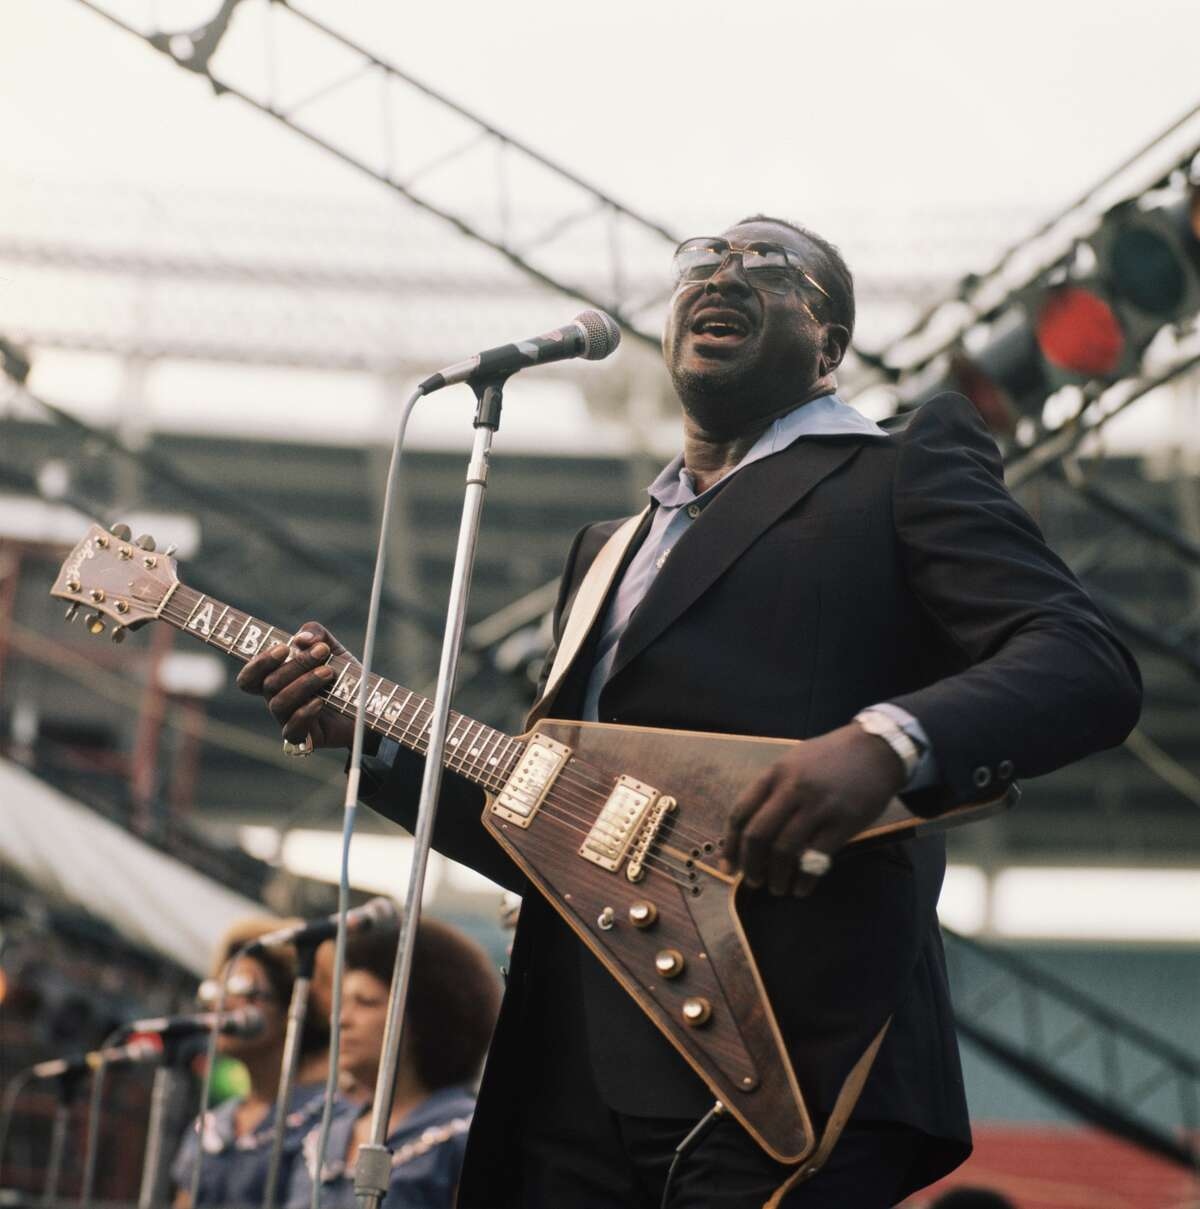 Albert King (1923-1992), blues guitarist and singer, performs on stage as part of the Newport Jazz Festival, held in New York City, in July 1977.